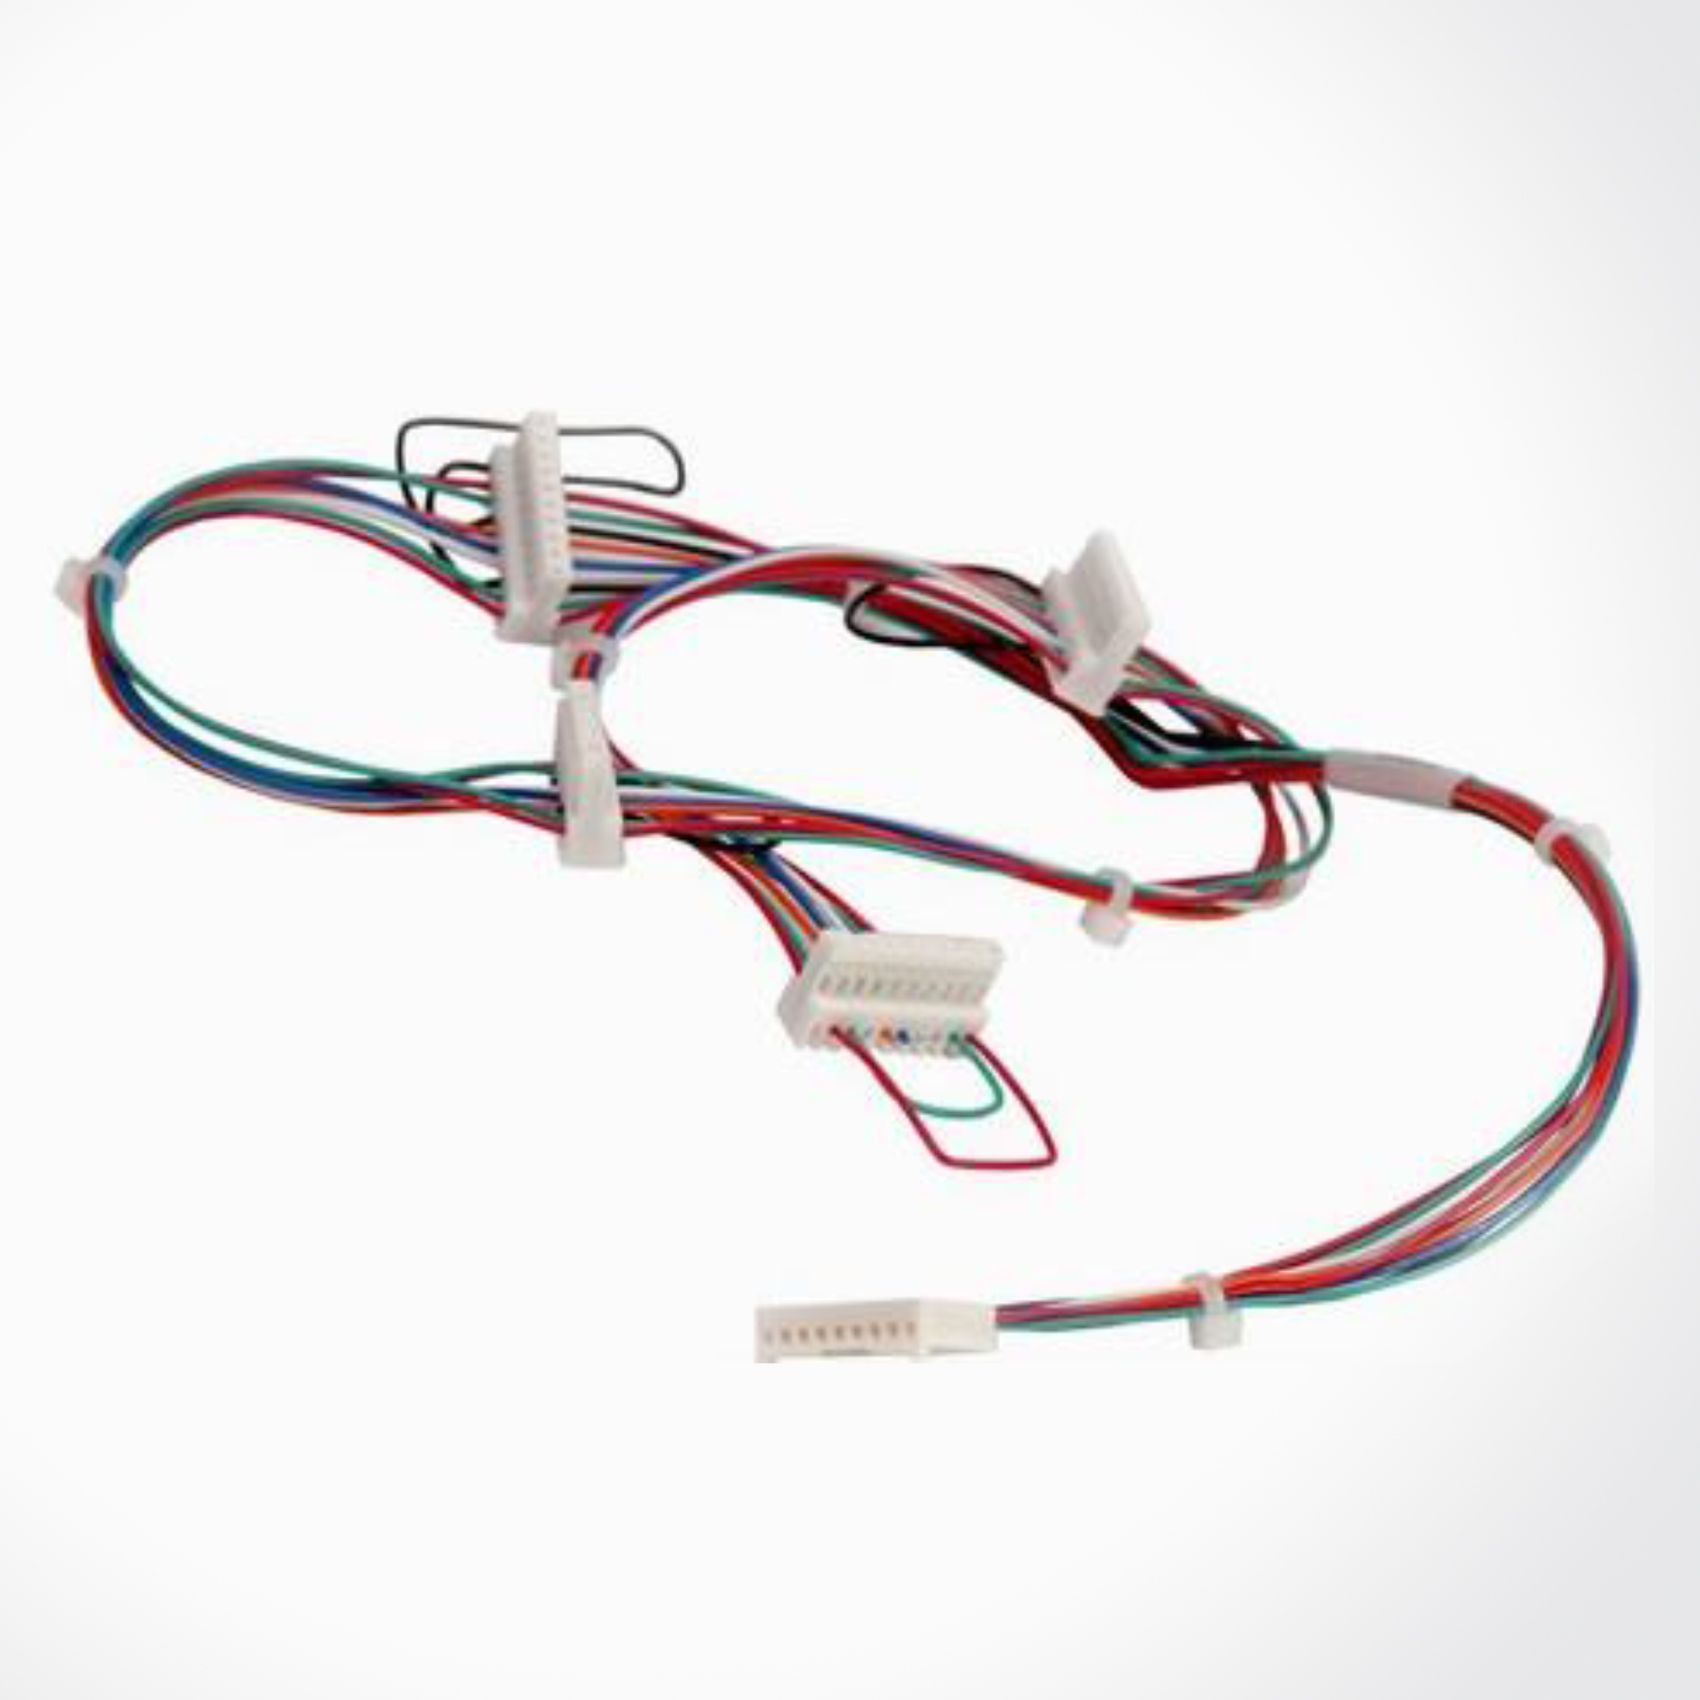 We Provide Wiring Harness For Electronic Control Devices And Plc